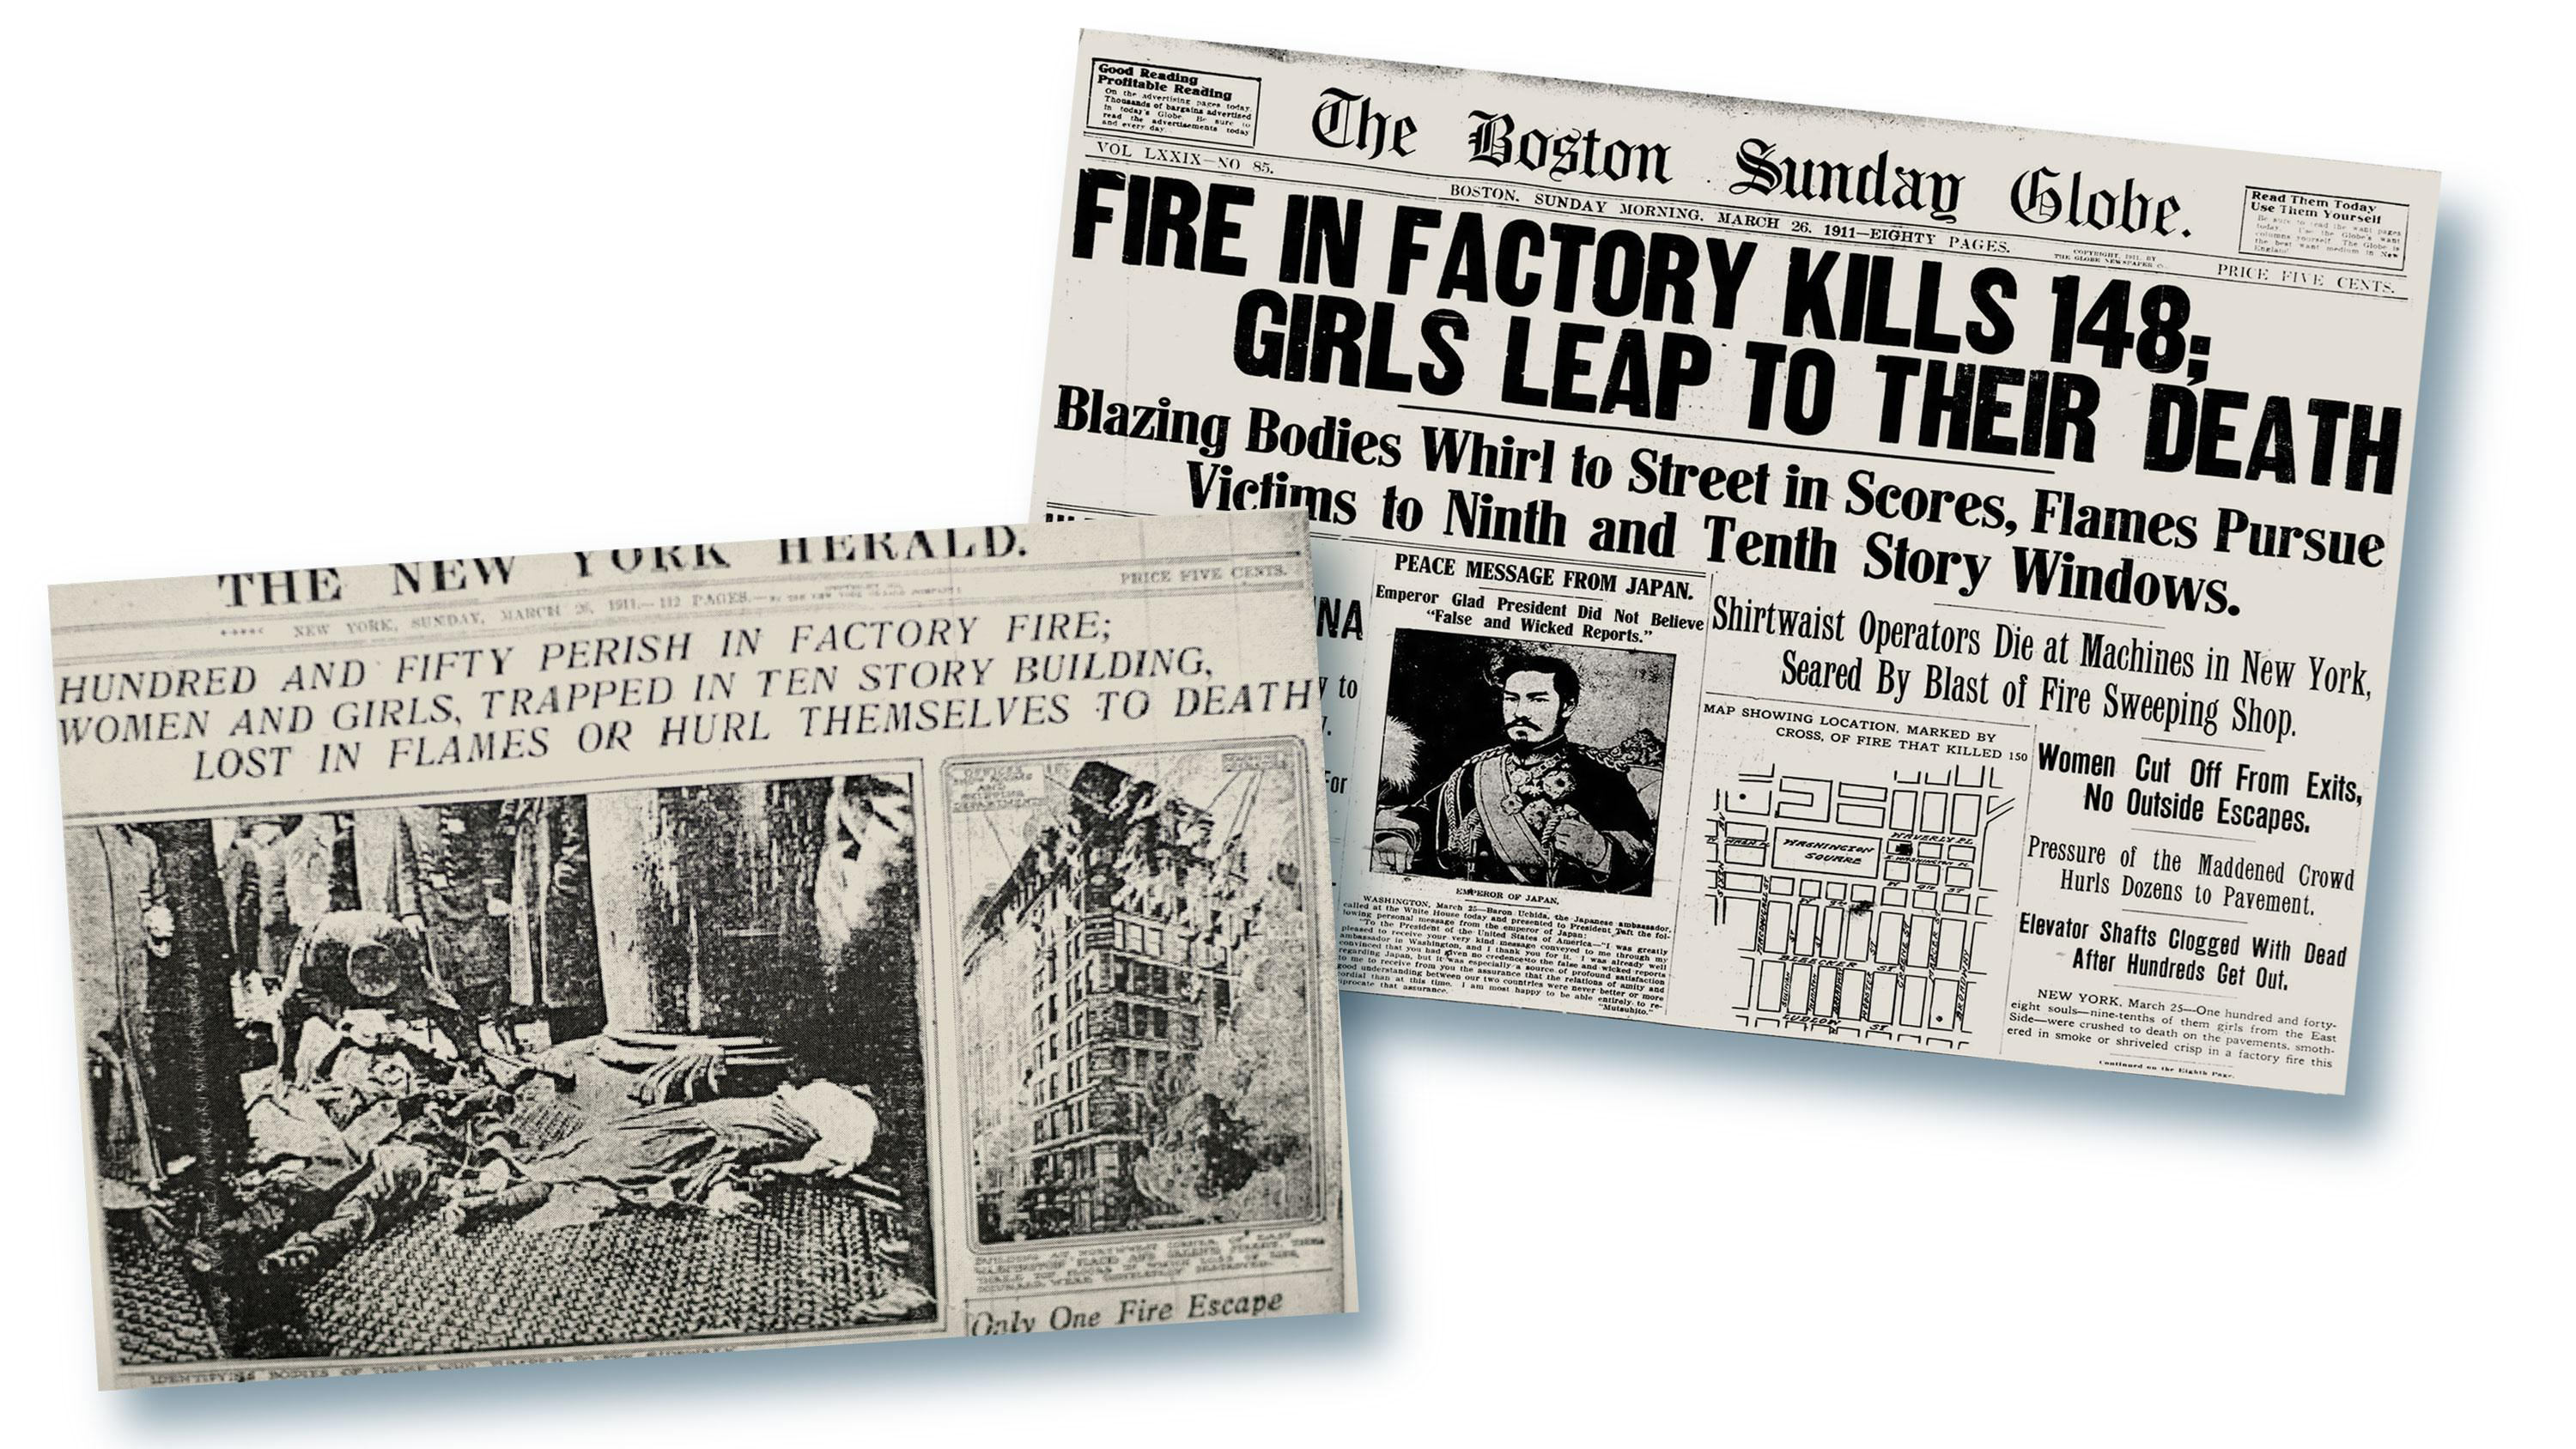 Newspaper headlines of the fire.